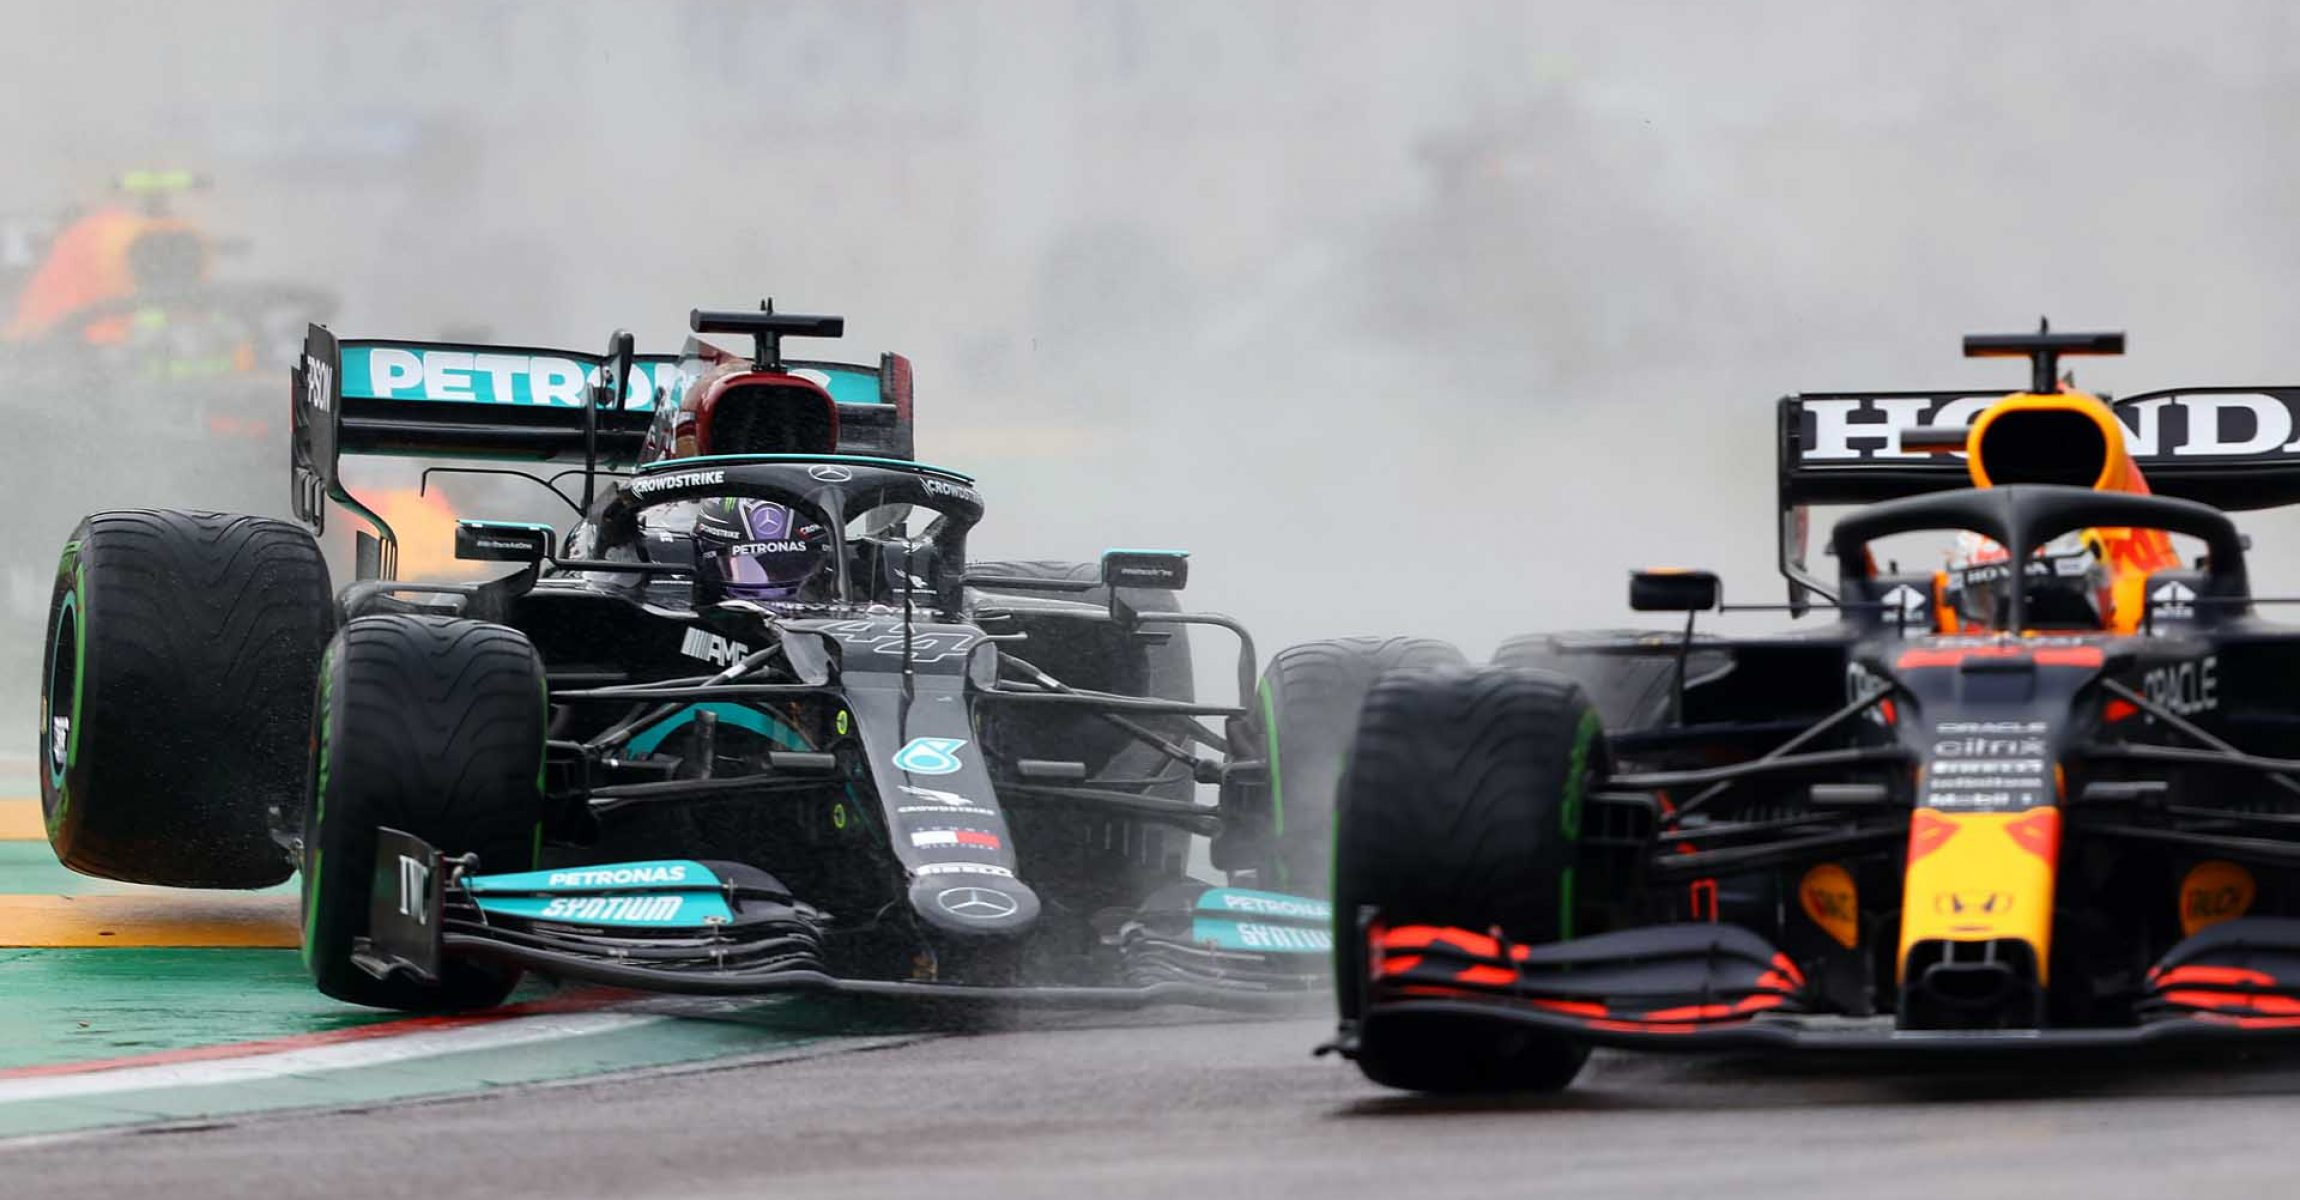 IMOLA, ITALY - APRIL 18: Max Verstappen of the Netherlands driving the (33) Red Bull Racing RB16B Honda and Lewis Hamilton of Great Britain driving the (44) Mercedes AMG Petronas F1 Team Mercedes W12 battle for track position at the start during the F1 Grand Prix of Emilia Romagna at Autodromo Enzo e Dino Ferrari on April 18, 2021 in Imola, Italy. (Photo by Bryn Lennon/Getty Images)